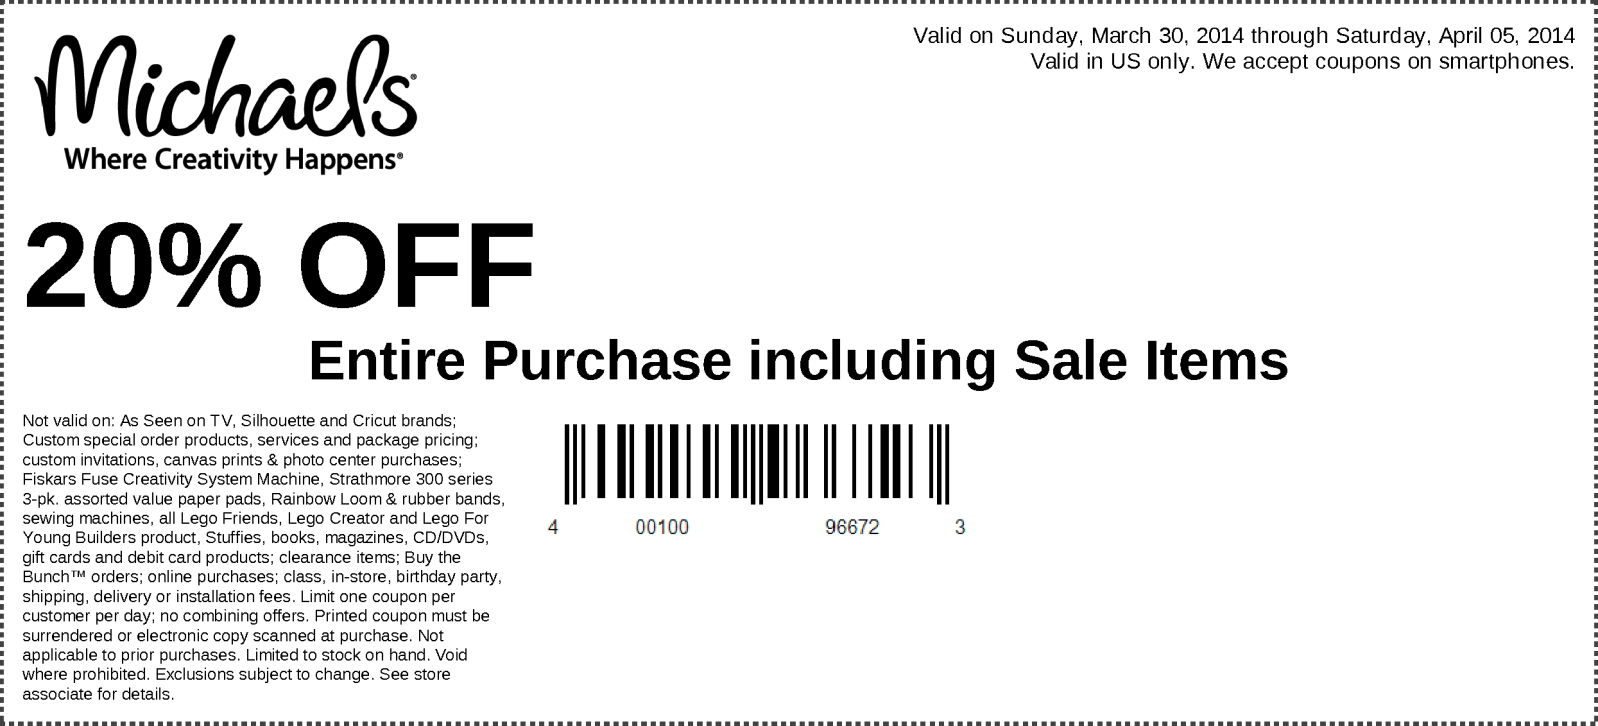 michaels weekly coupon chicago flower garden show